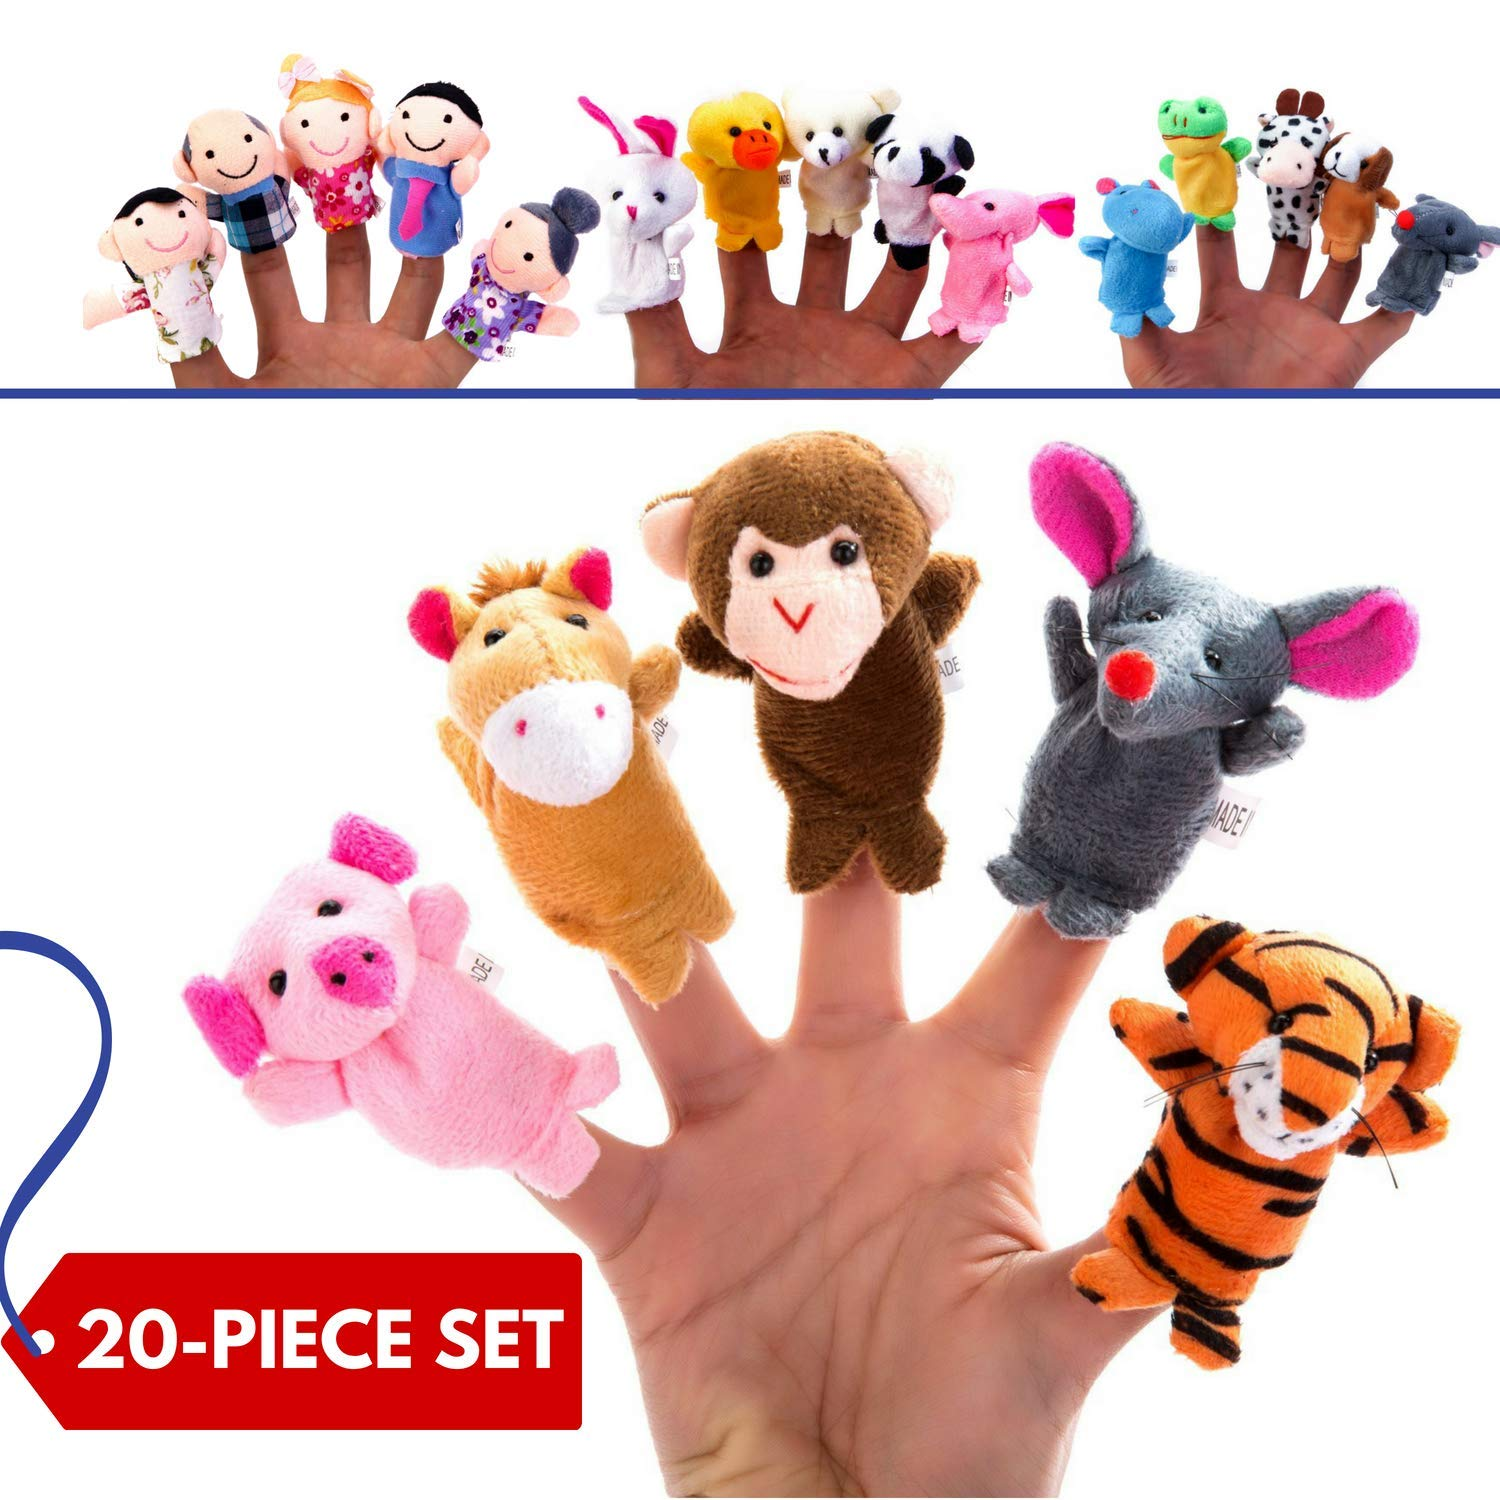 BETTERLINE 20-Piece Story Time Finger Puppets Set - Cloth Velvet Puppets - 14 Animals and 6 People Family Members Better Line ®